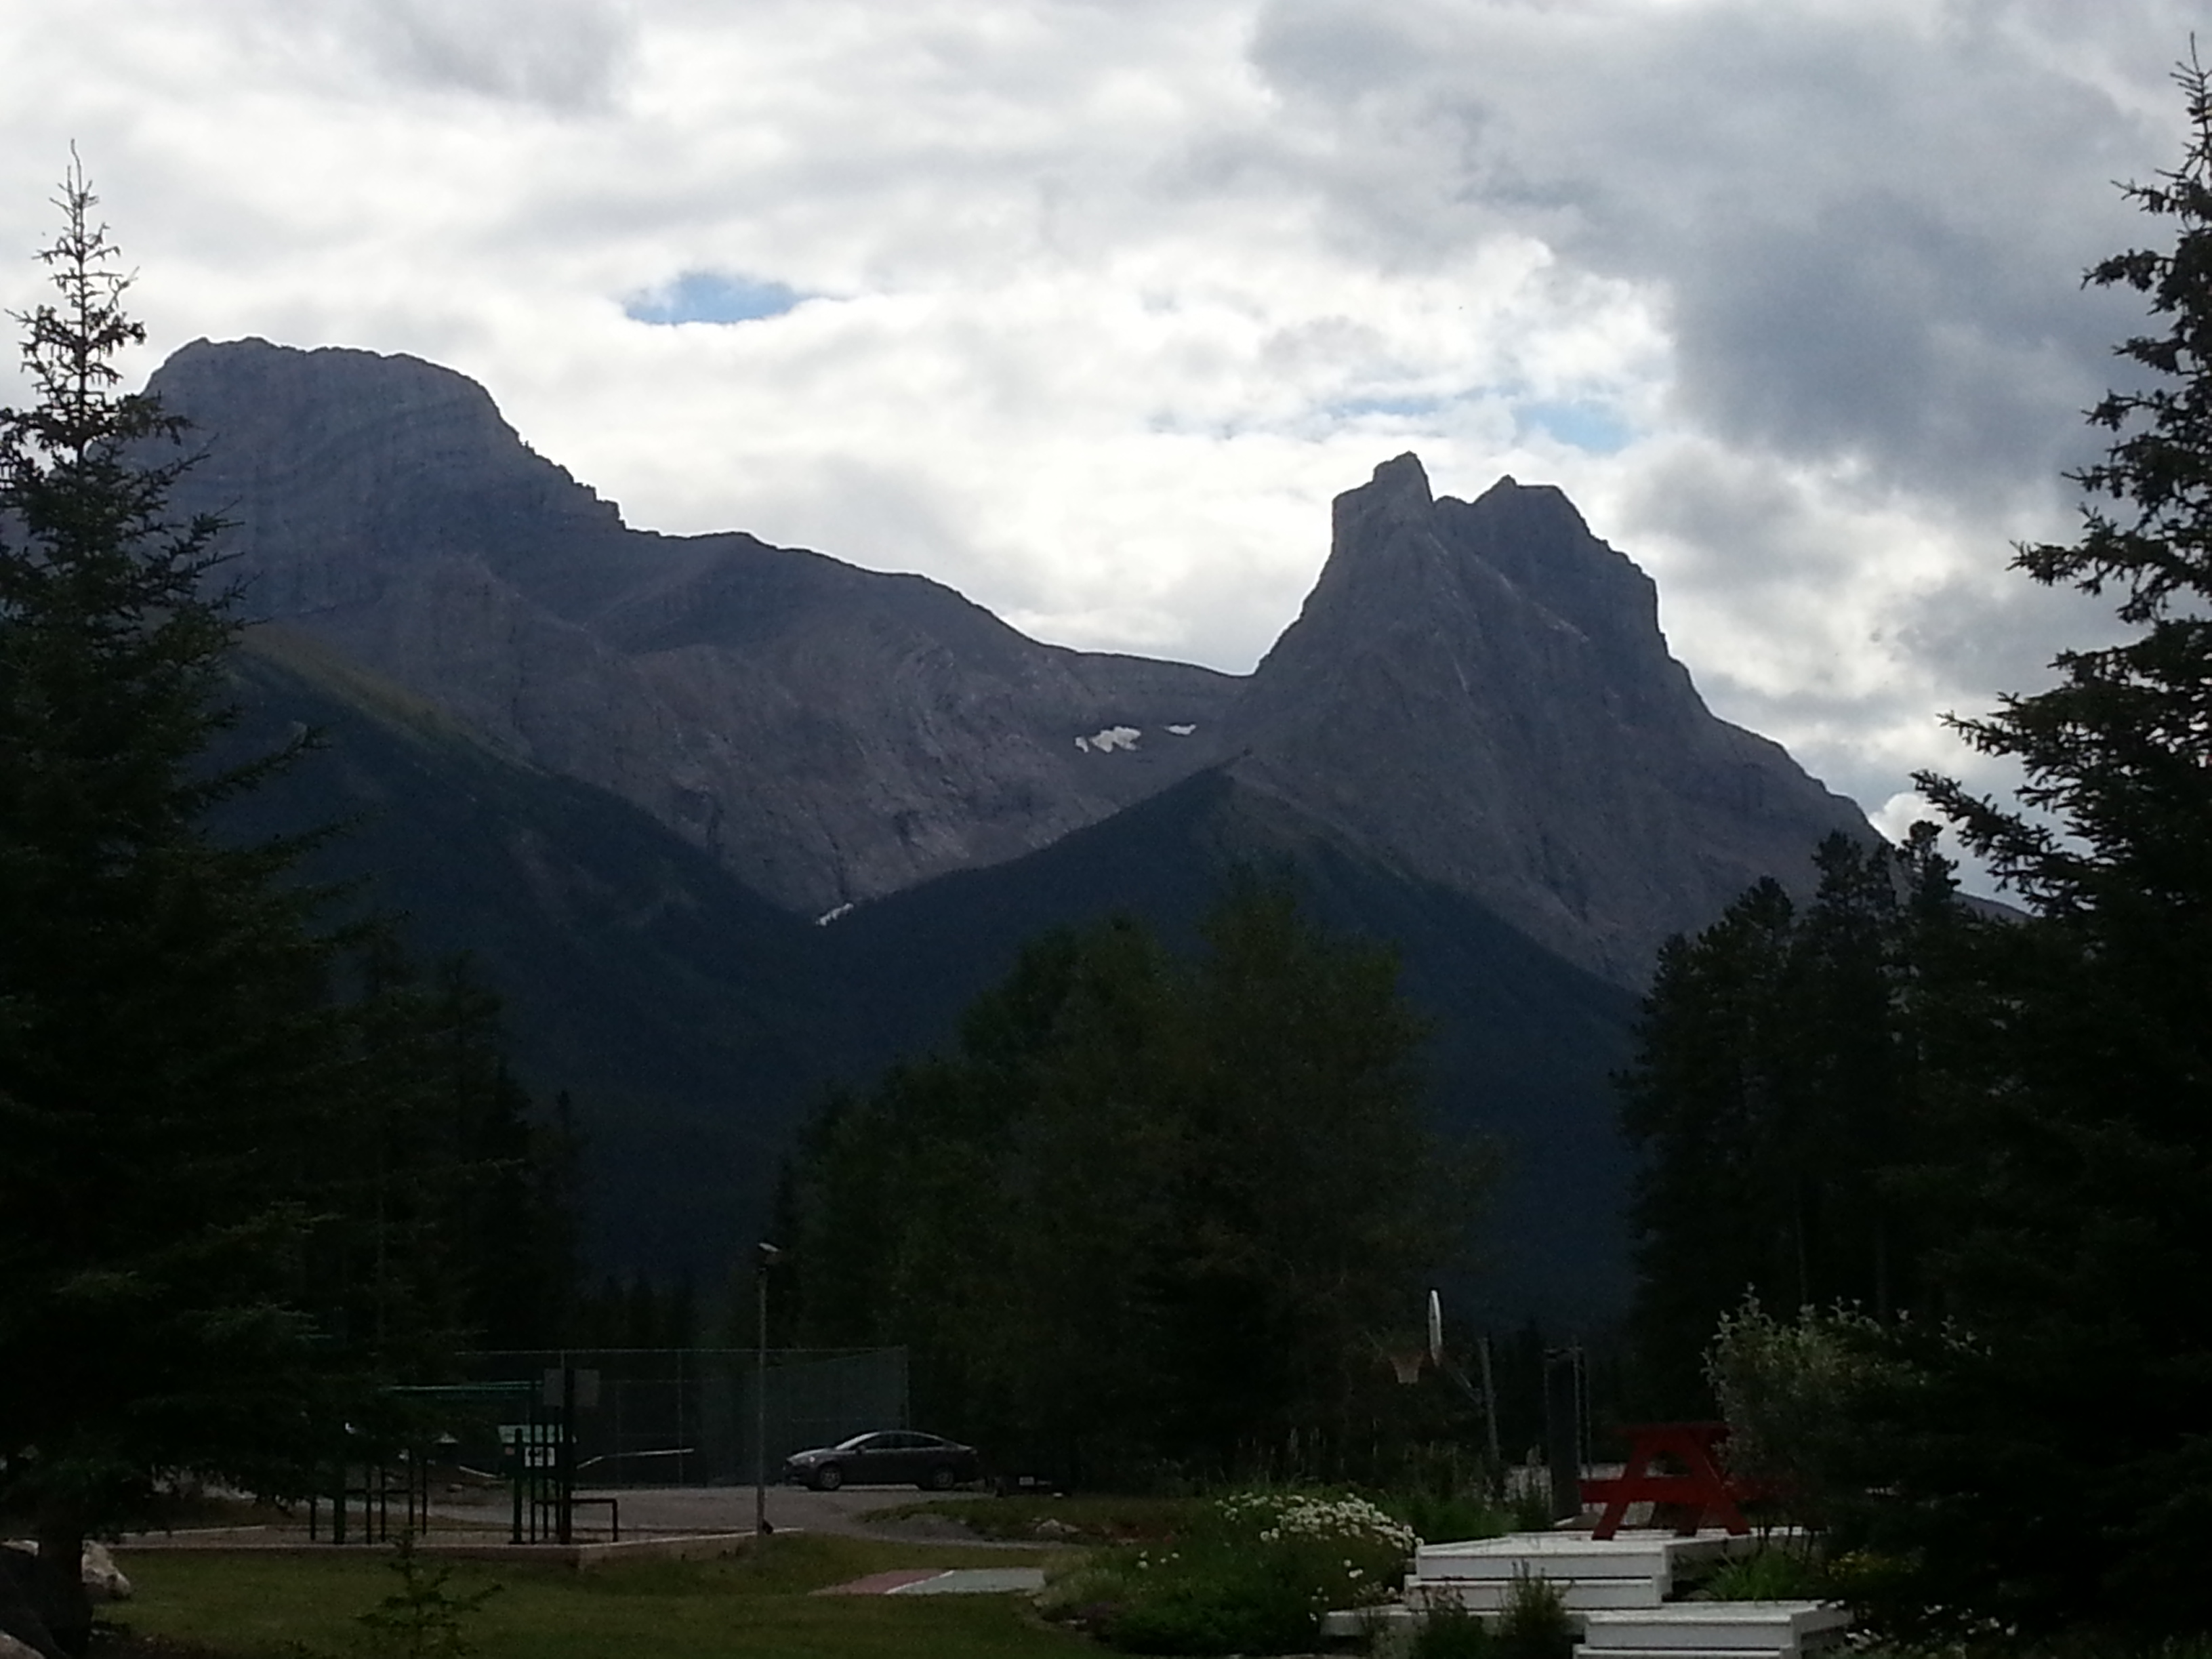 Banff Gate Mountain Resort image